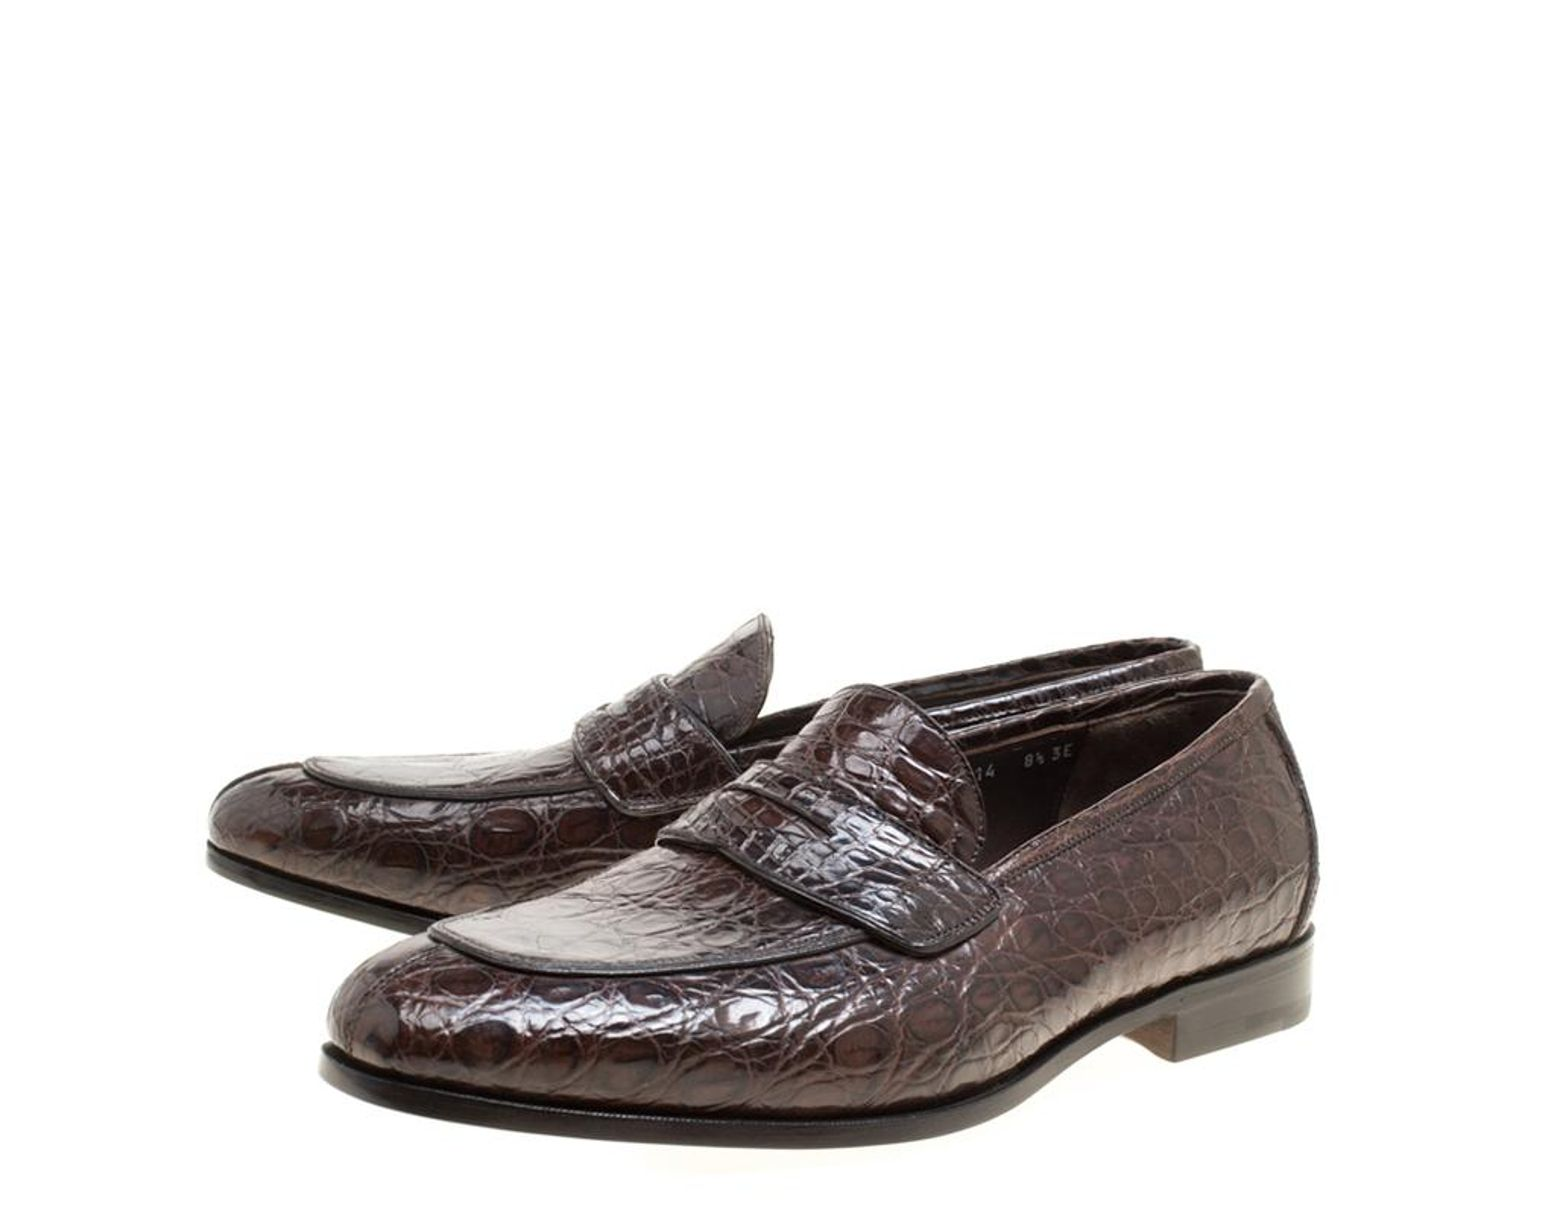 7d0cdbd37071 Lyst - Ferragamo Mocca Crocodile Leather Pablo Penny Loafers Size 42.5 in  Brown for Men - Save 13%